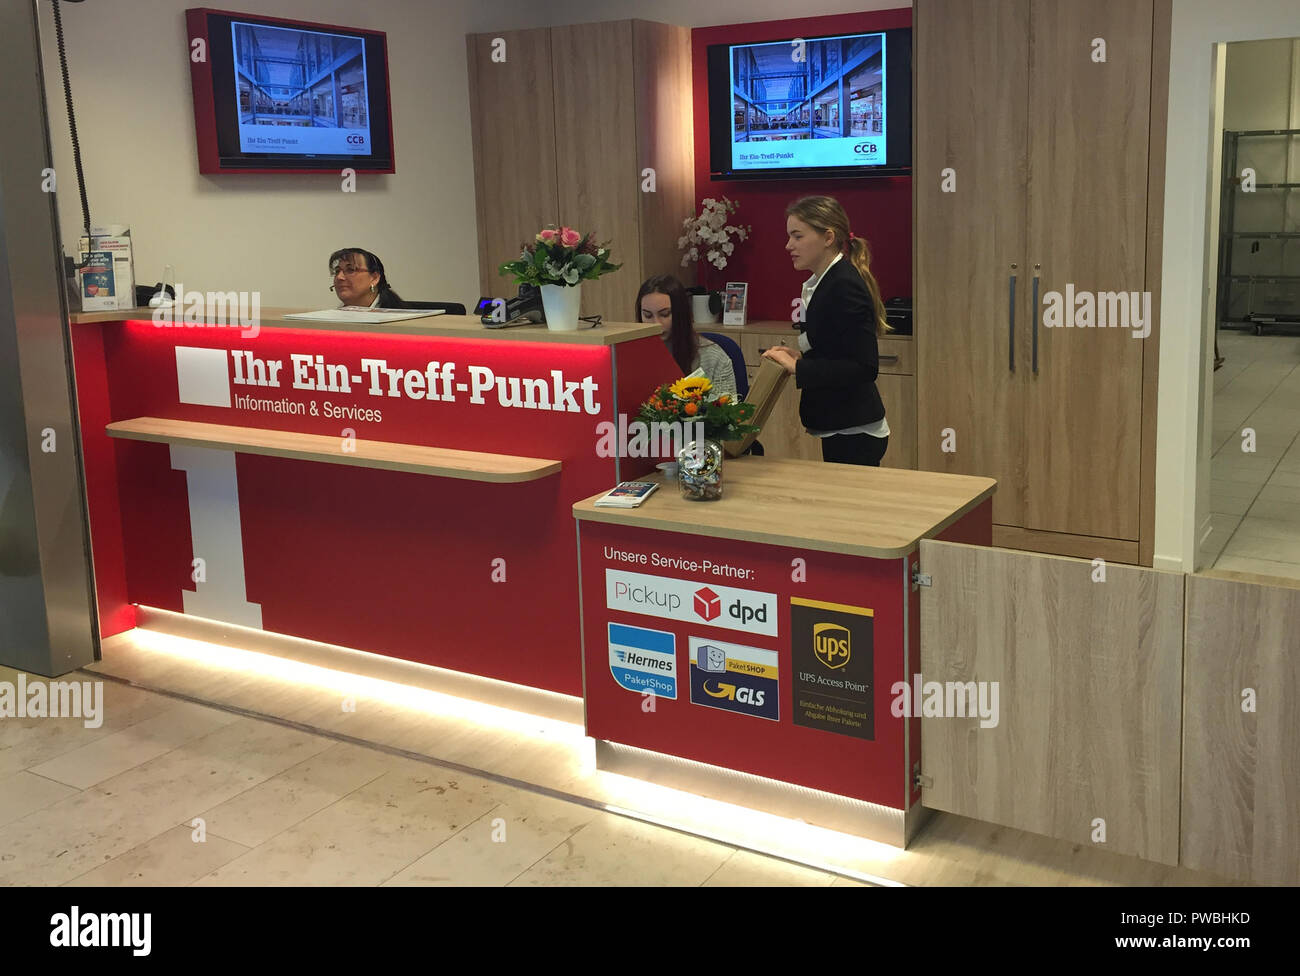 Badewannendoktor Hamburg Bergedorf 15 October 2018 Hamburg Employees Stand At The Counter Of The